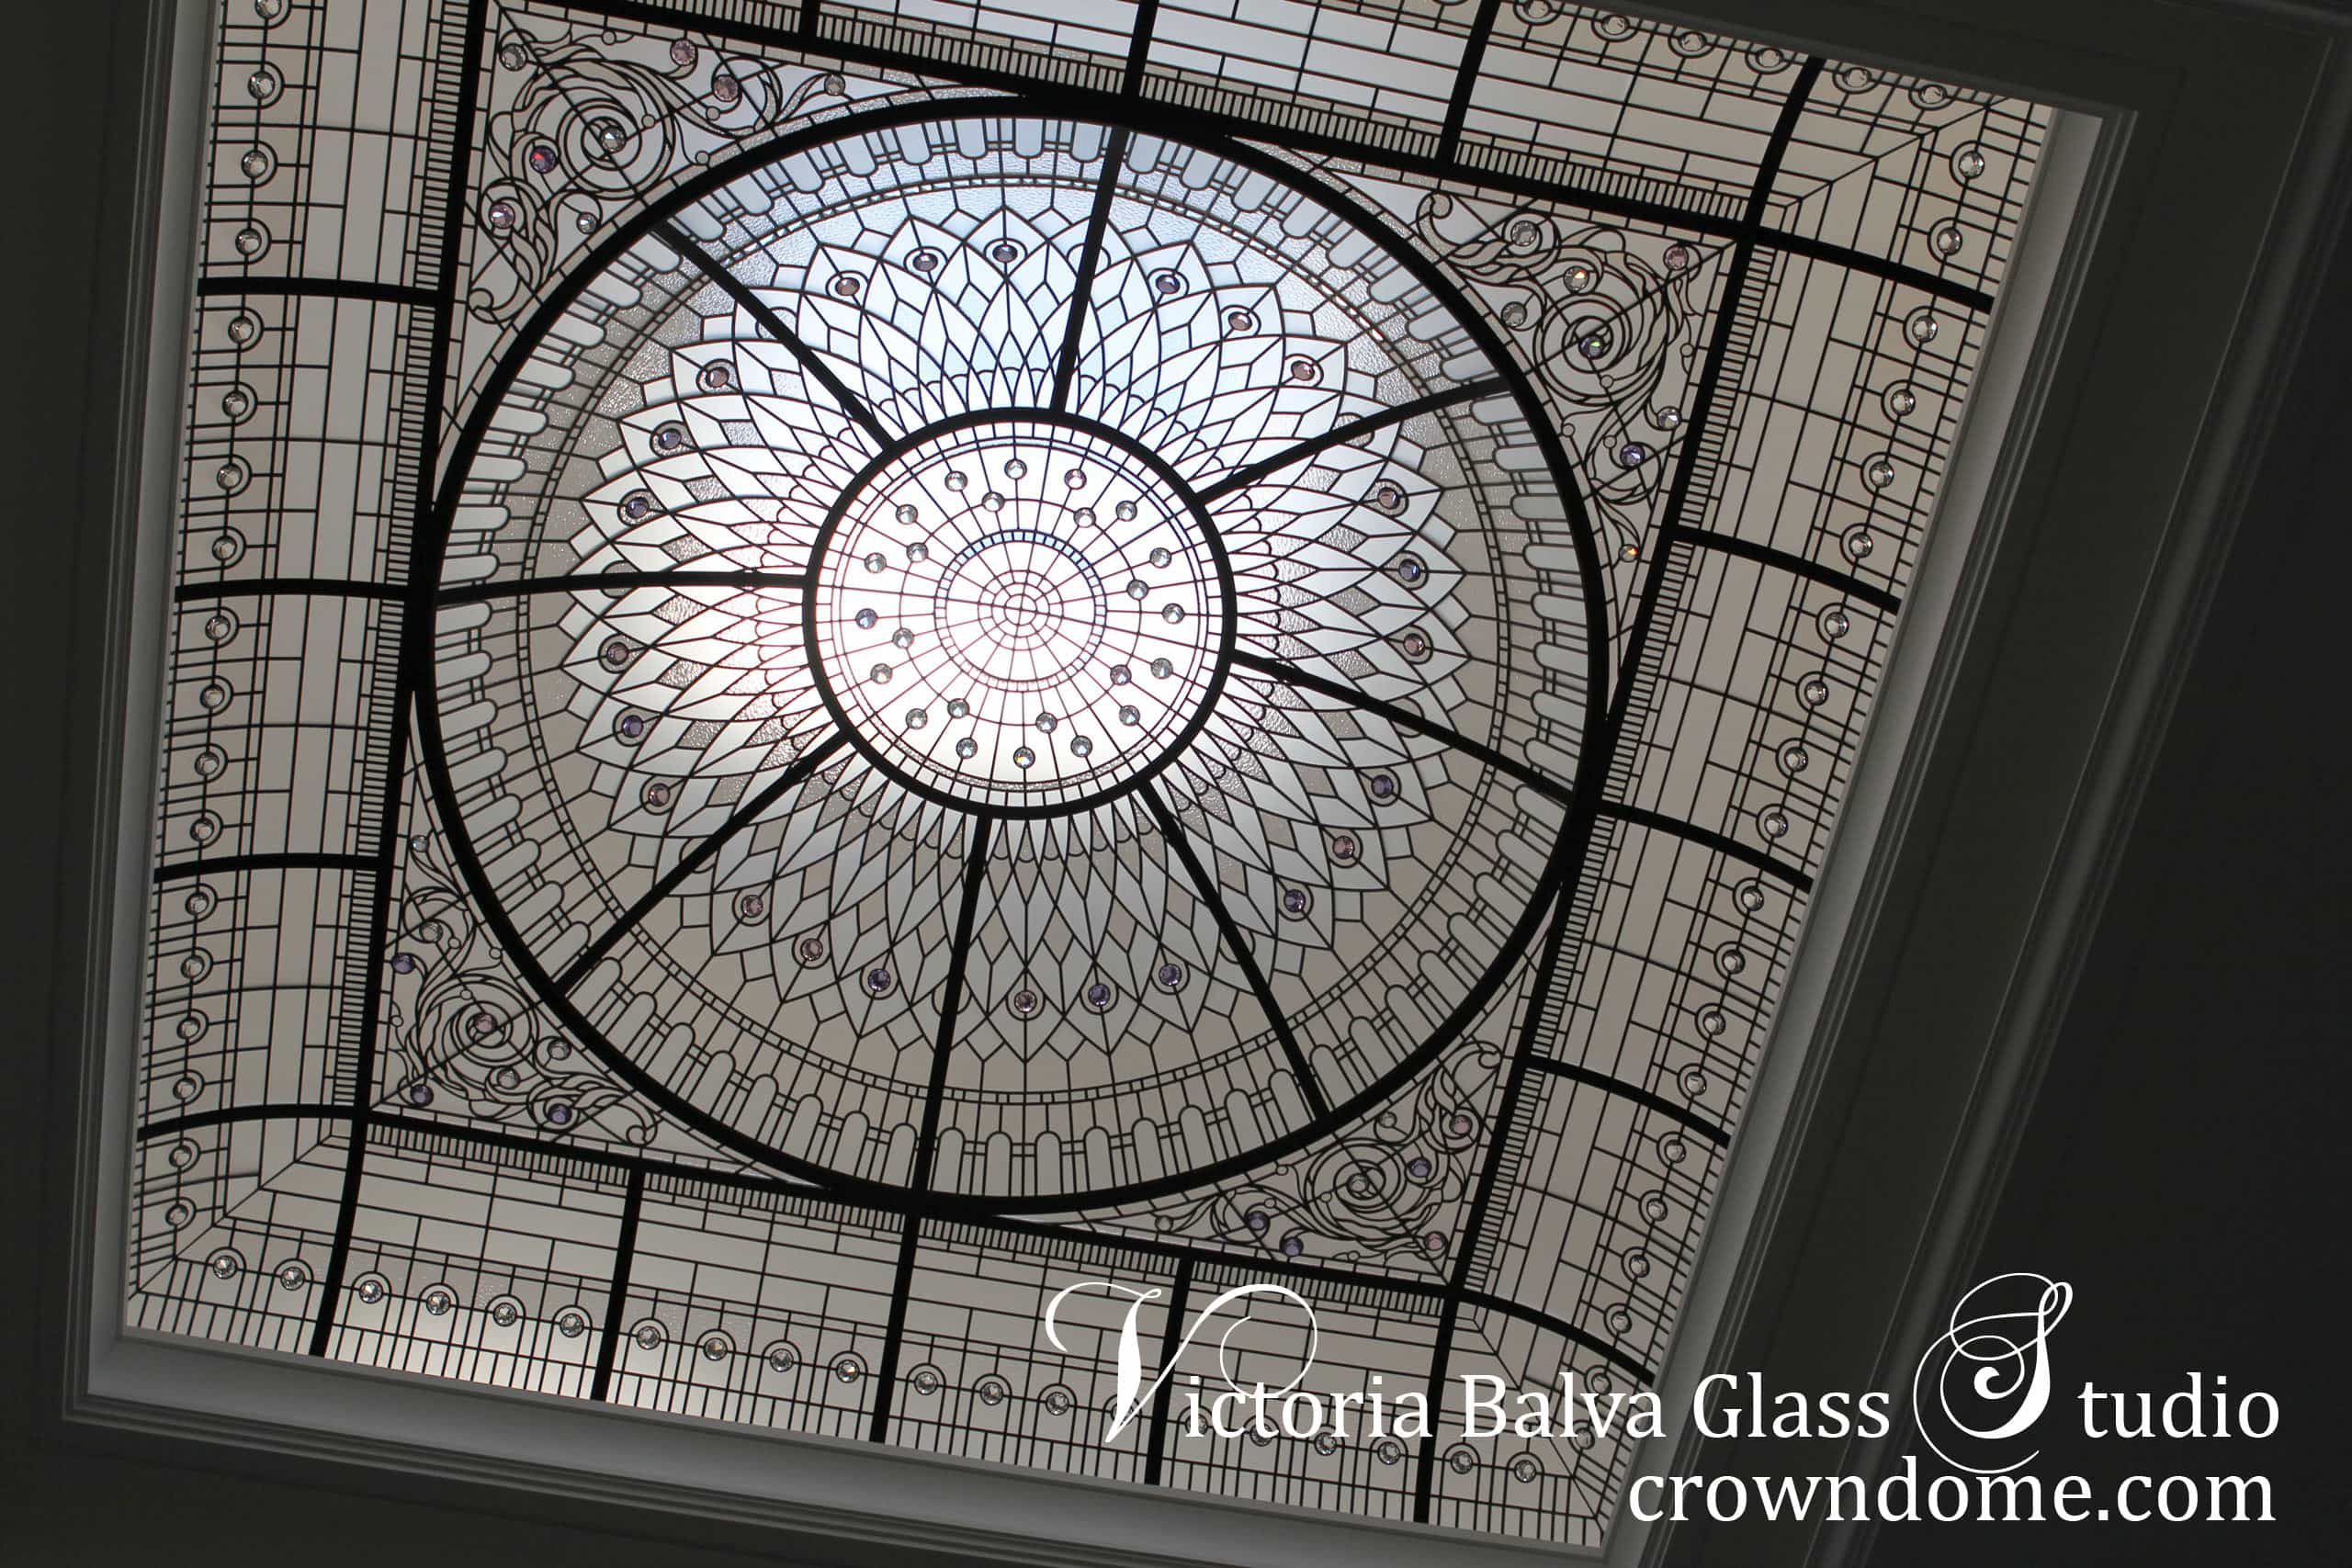 Custom large stained leaded glass dome artistic skylight for the interior design of a custom-built luxury residential home inspired by Hotel Plaza New York. Designed - built -Toronto. Artistic glass domed skylight design with custom beveled glass, crystal diamond jewels, and clear architectural textured glass. Impressive glass dome design